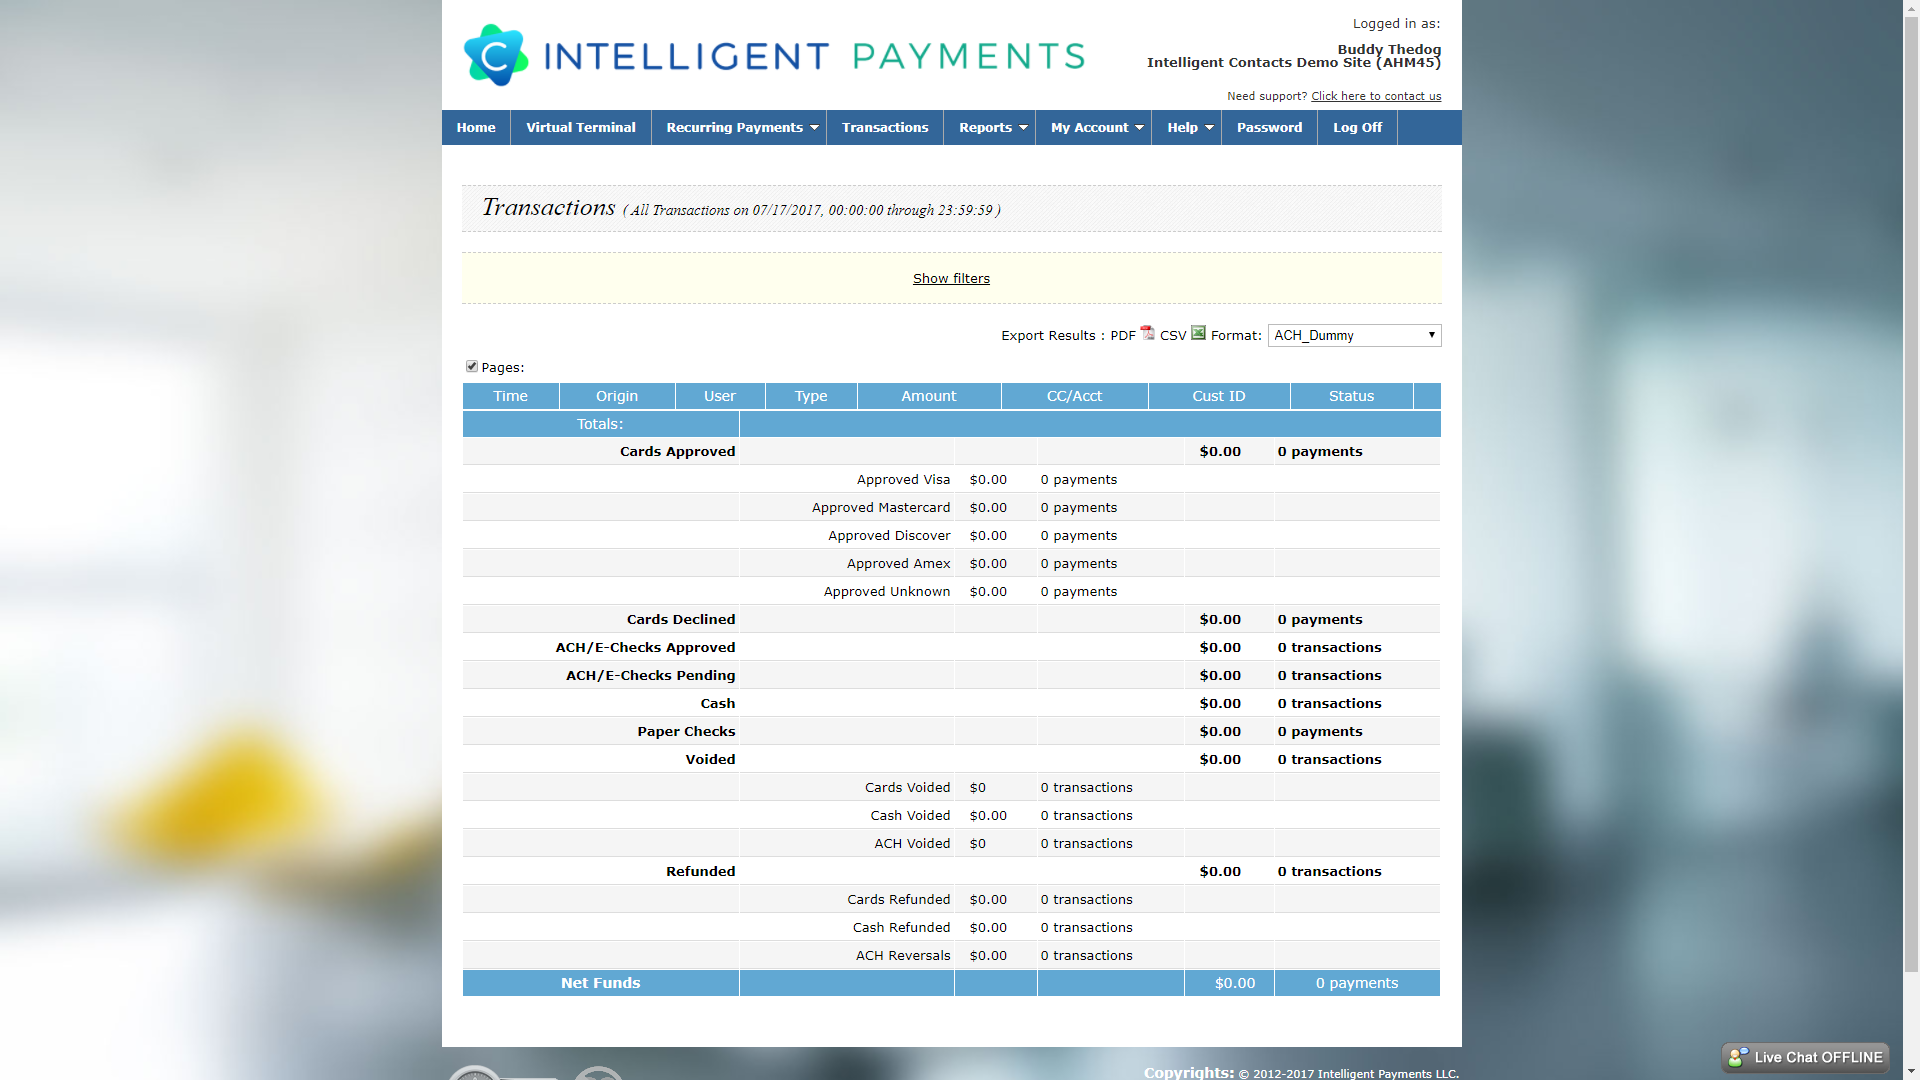 Intelligent Contacts puts a comprehensive payment processing and reporting system at your fingertips.